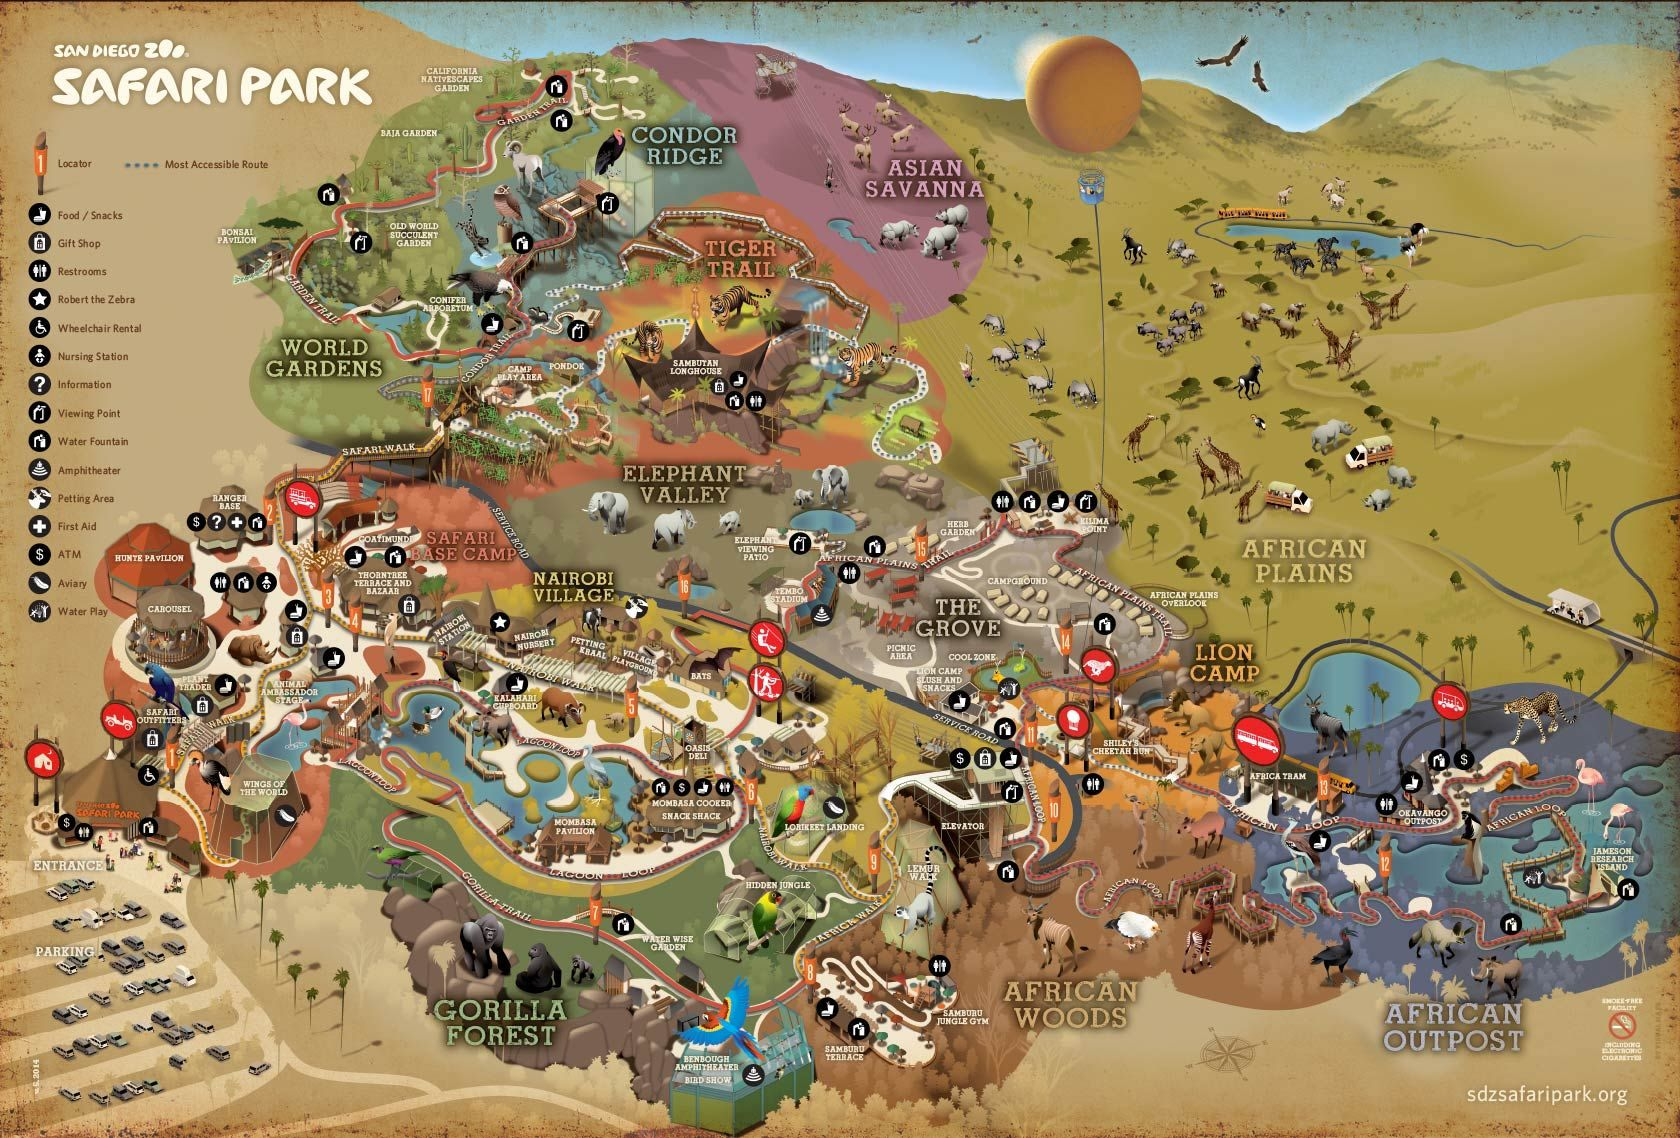 Park Map | San Diego Zoo Safari Park | Travel-Been There